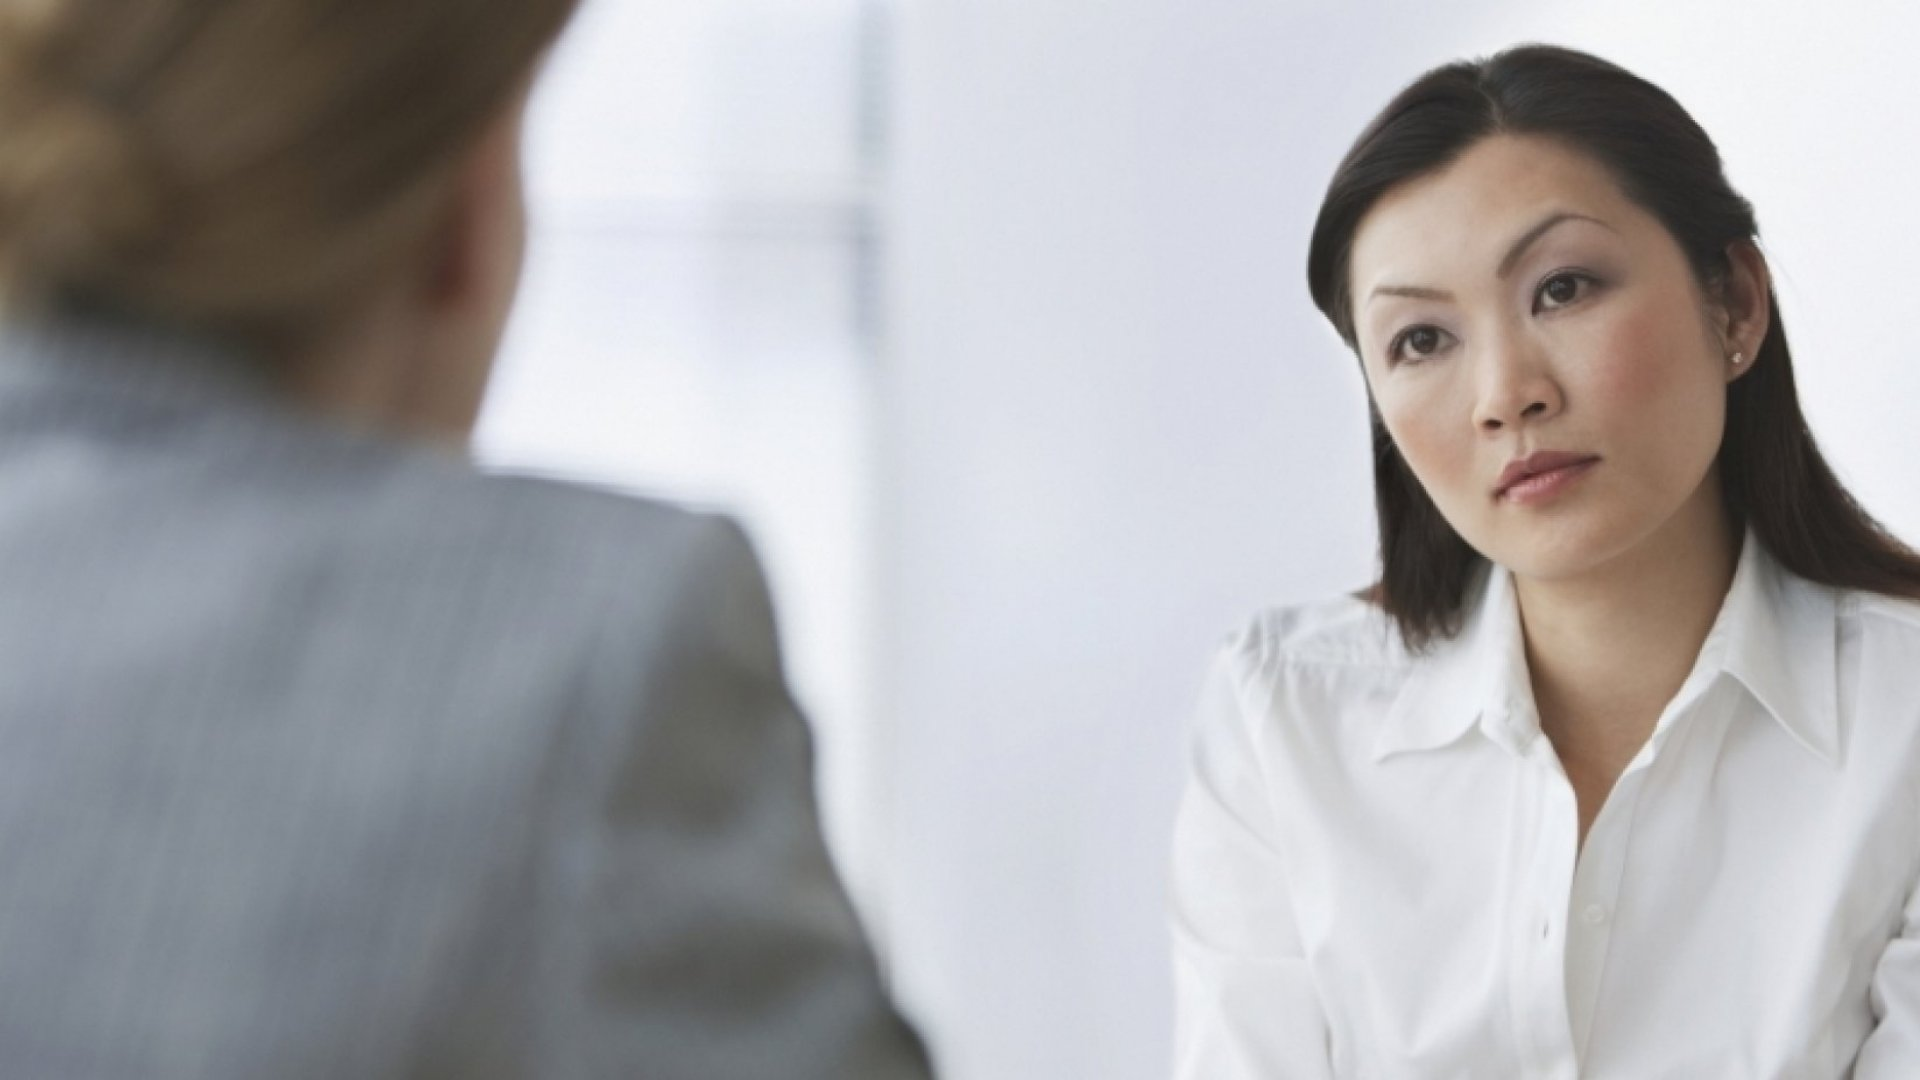 Forget Exit Interviews. Try 'Stay' Interviews Instead